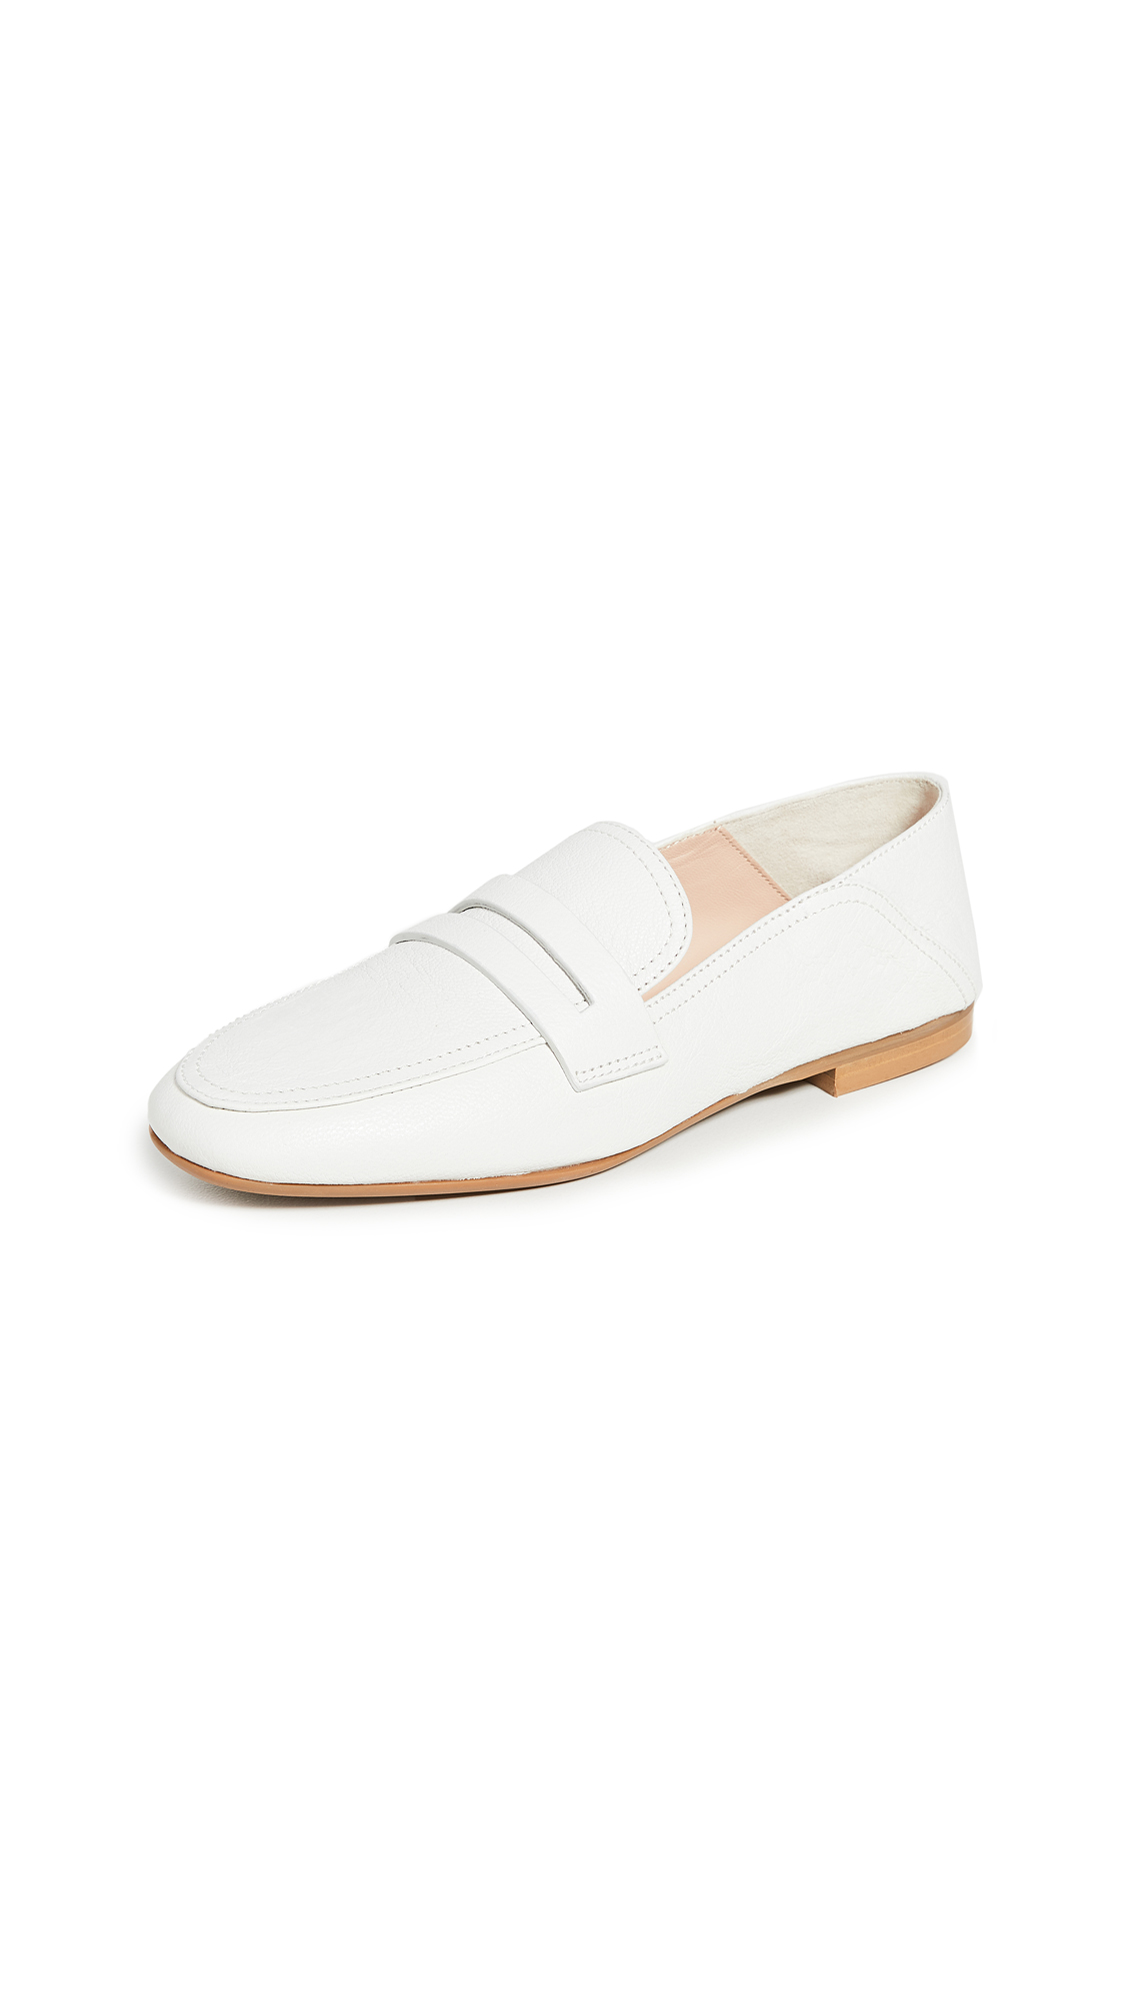 Buy Club Monaco Kedda Loafers online, shop Club Monaco